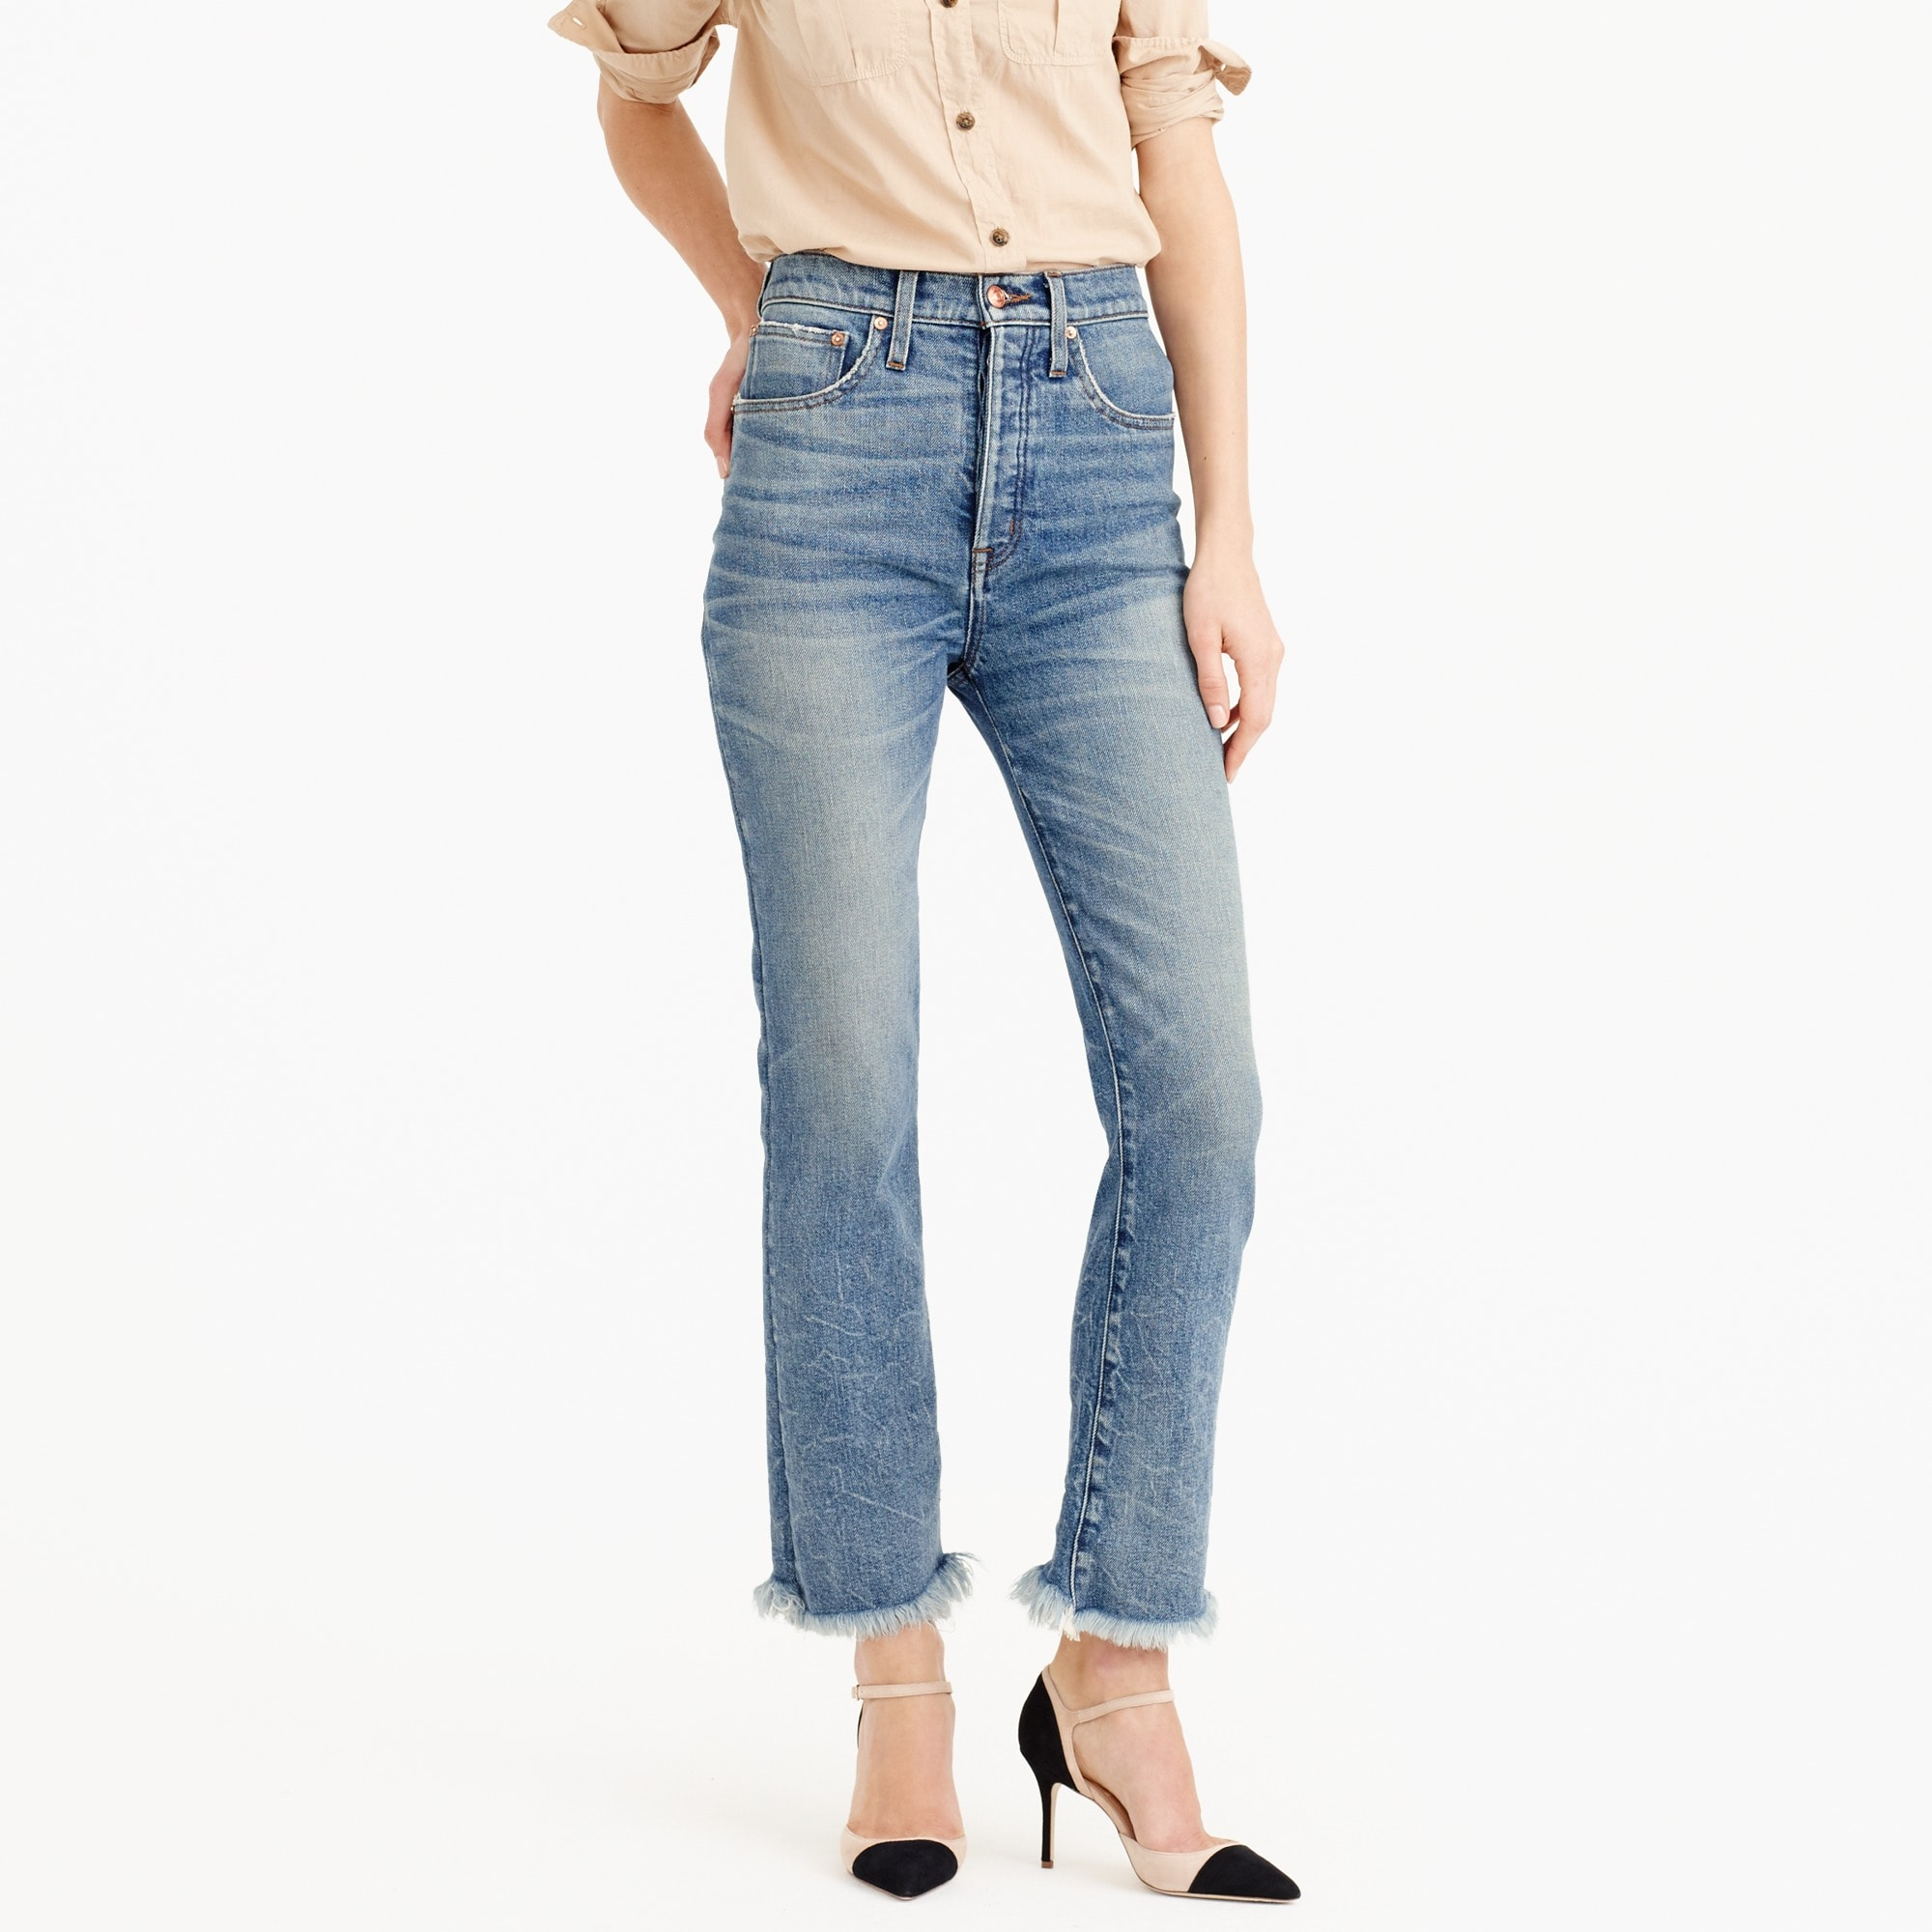 Image 2 for Point Sur relaxed cropped bootcut jean